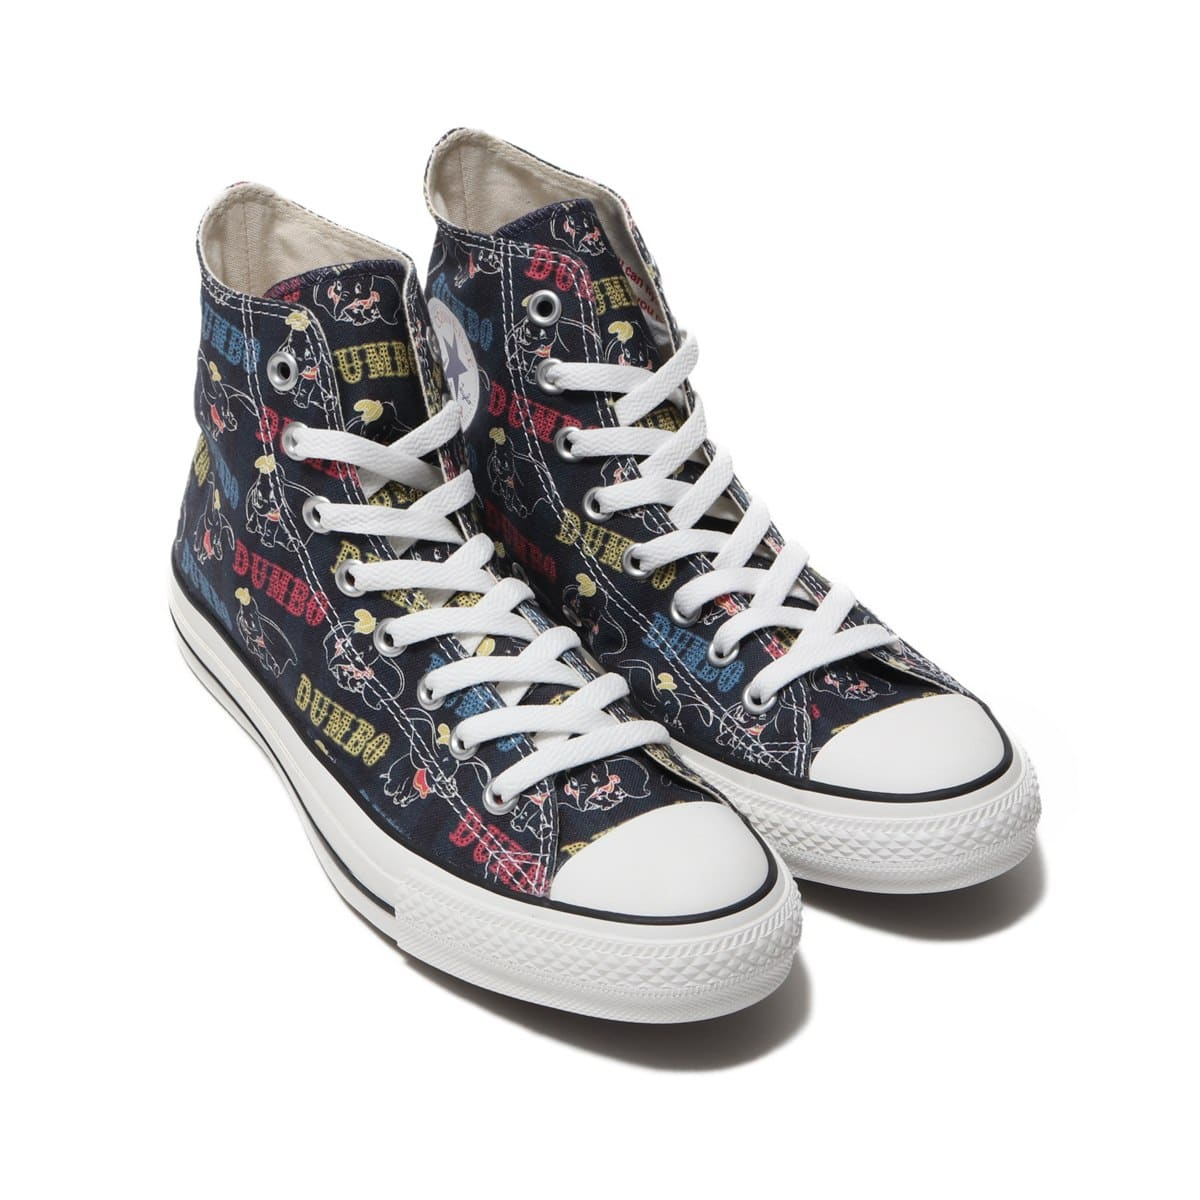 CONVERSE ALL STAR DUMBO PT HI NAVY 19SS-S_photo_large